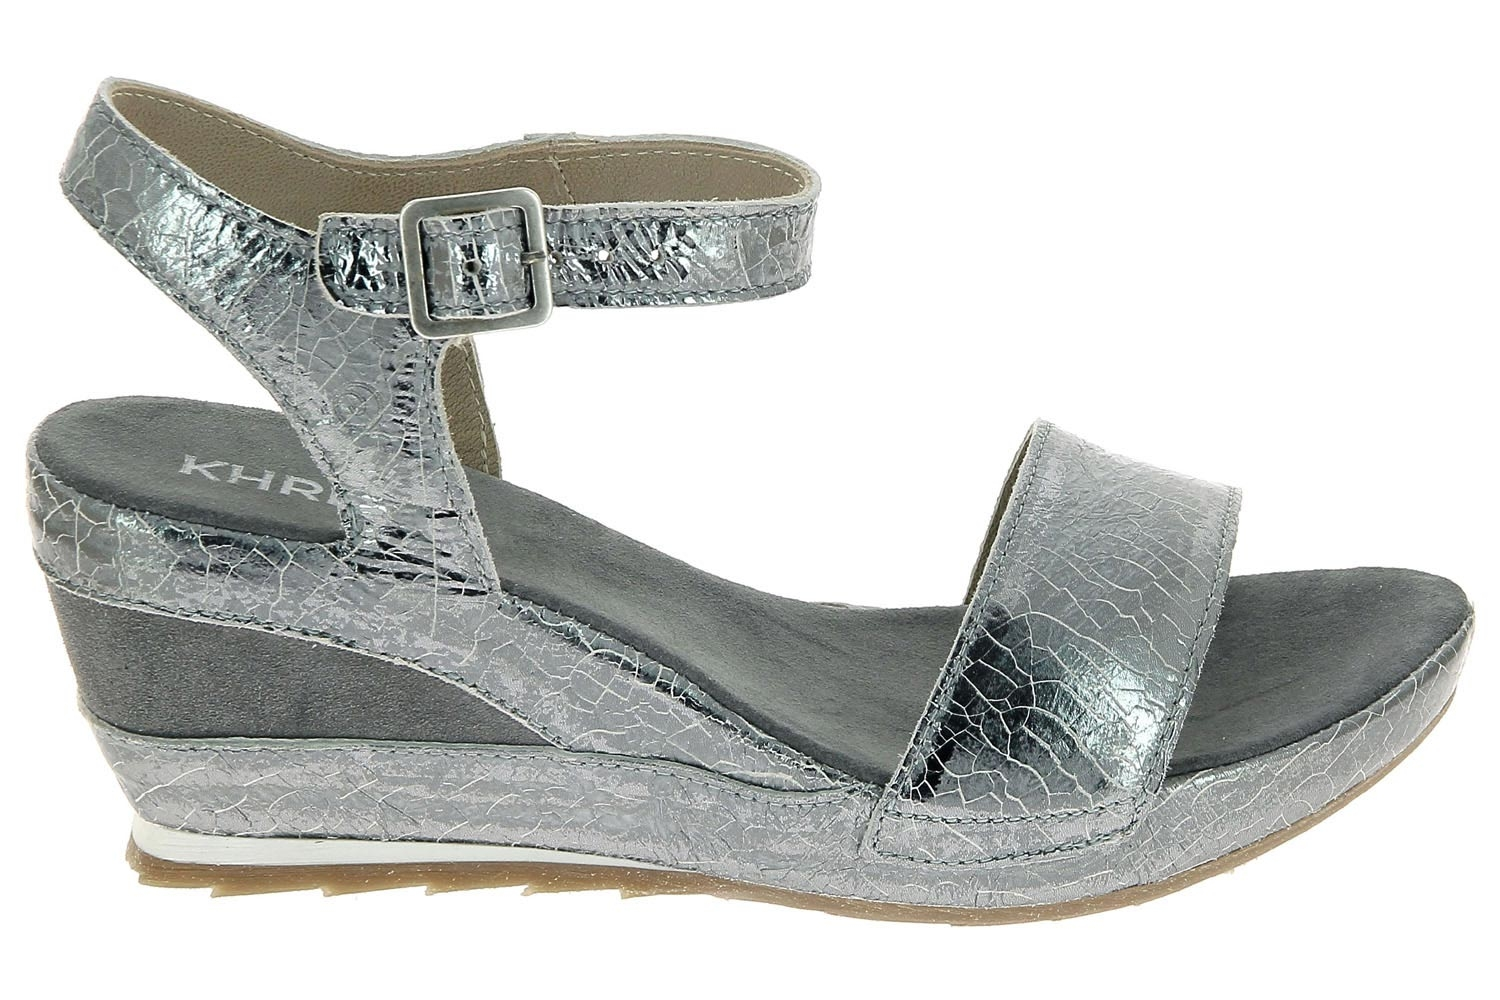 Chaussures Khrio D'ete Argent Nu Pieds 171k2711trsq Style Ville EH2YDW9I